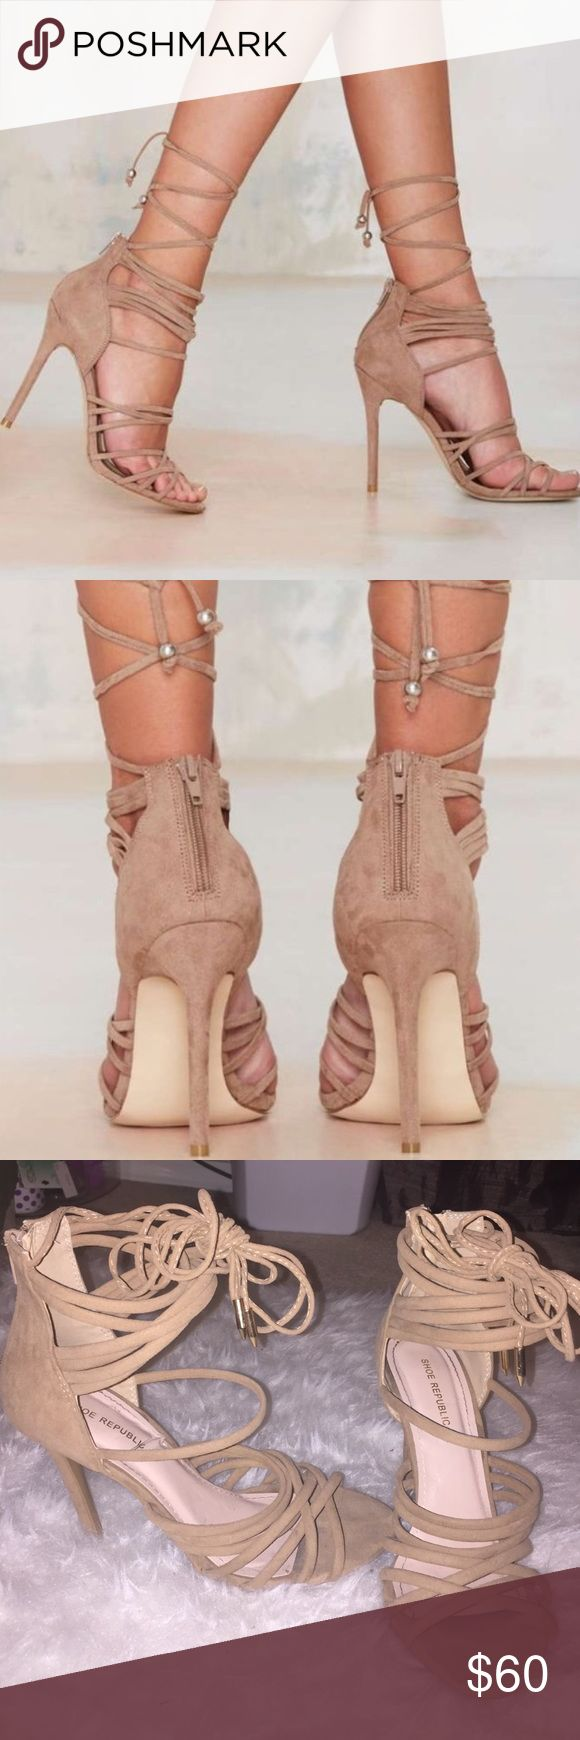 Suede Lace Up Heels Nast Gal look-a-likes. Straps are super long and can be laced up as shown in picture. Only wore once, only flaw is shown in the last picture. Not from listed brand.   ❌ I DO NOT TRADE ❌ IF YOU HAVE A REASONABLE OFFER MAKE IT THROUGH THE OFFER BUTTON ❌ SOLD CHEAPER THROUGH MERC ❌ I SHIP SAME IF NOT NEXT DAY (DEPENDING ON WHAT TIME YOU MAKE THE PURCHASE) ❌ IF YOU SEE THIS ITEM PRICED LOWER SOMEWHERE ELSE GO BUY IT AND STAY OFF MY COMMENTS  ❌ HAPPY POSHING  Nasty Gal Shoes…